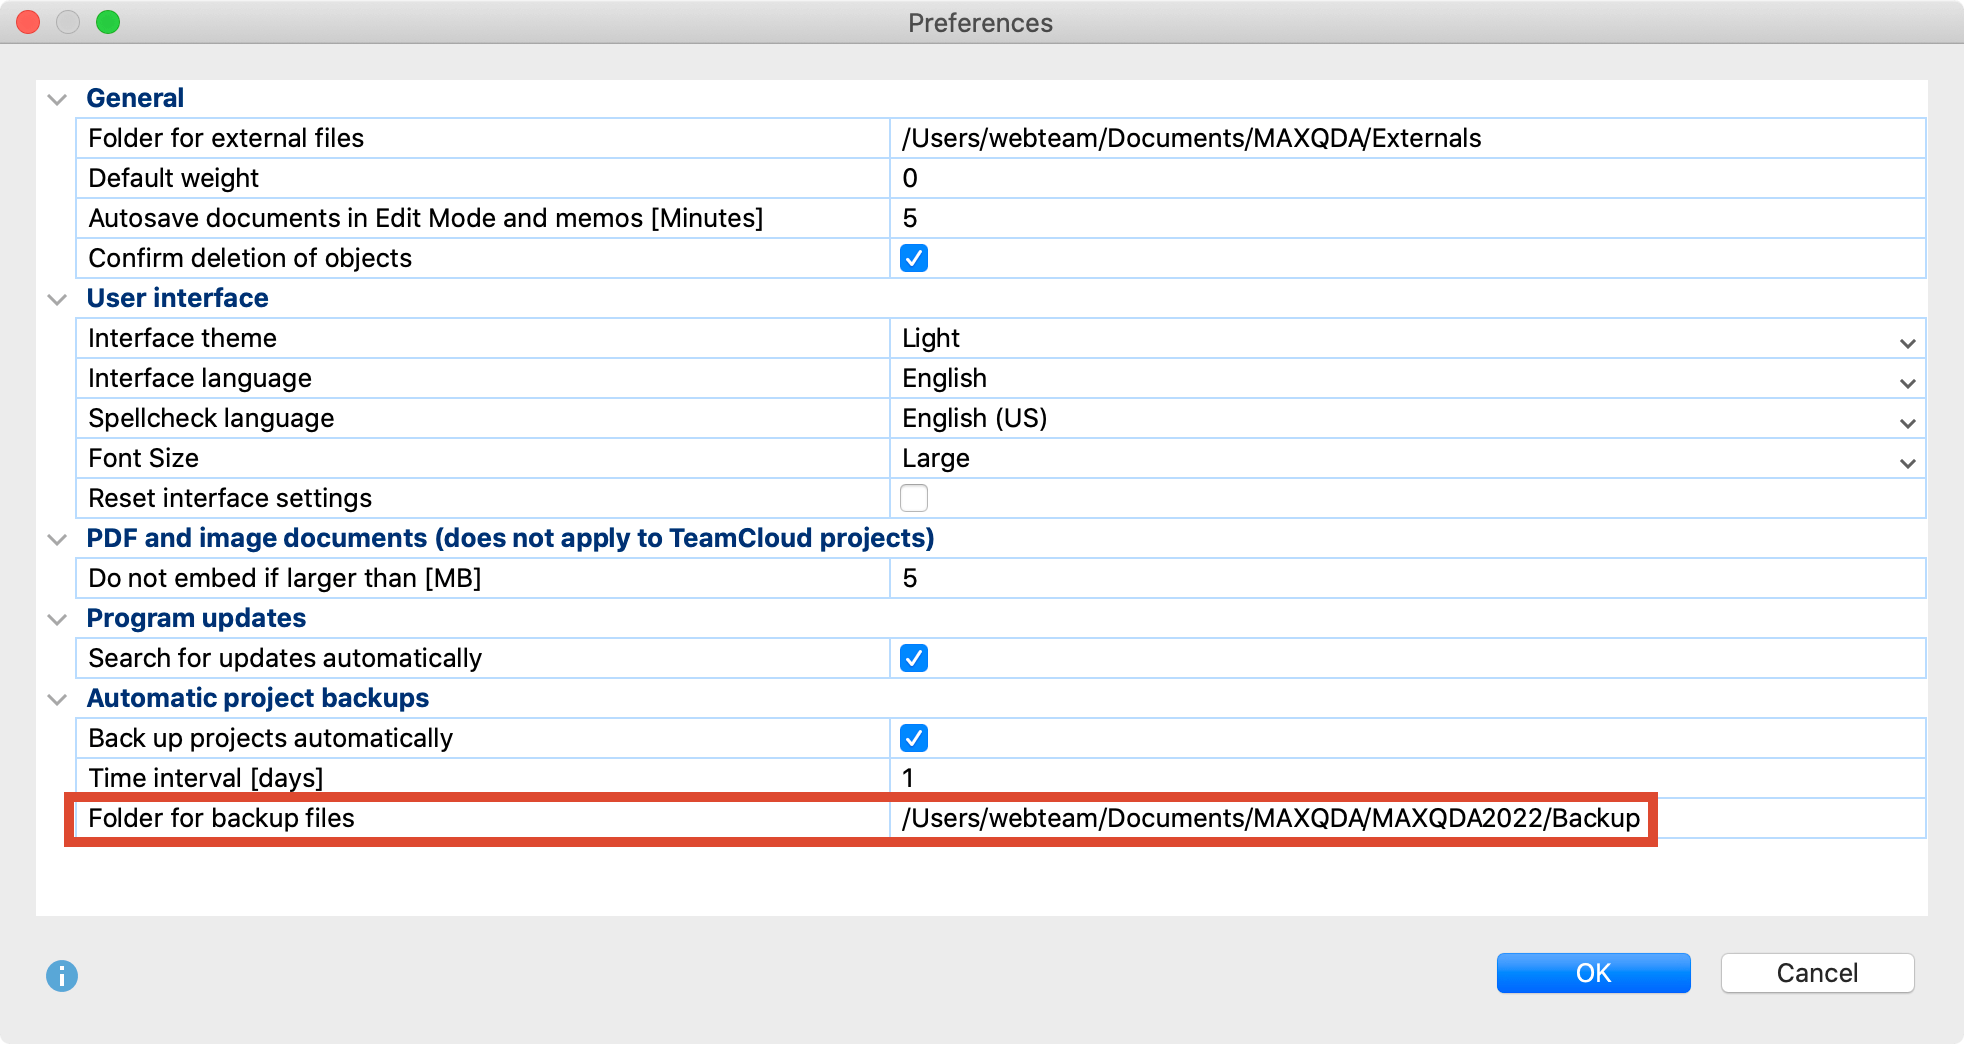 Define the settings for the automatic backup of projects